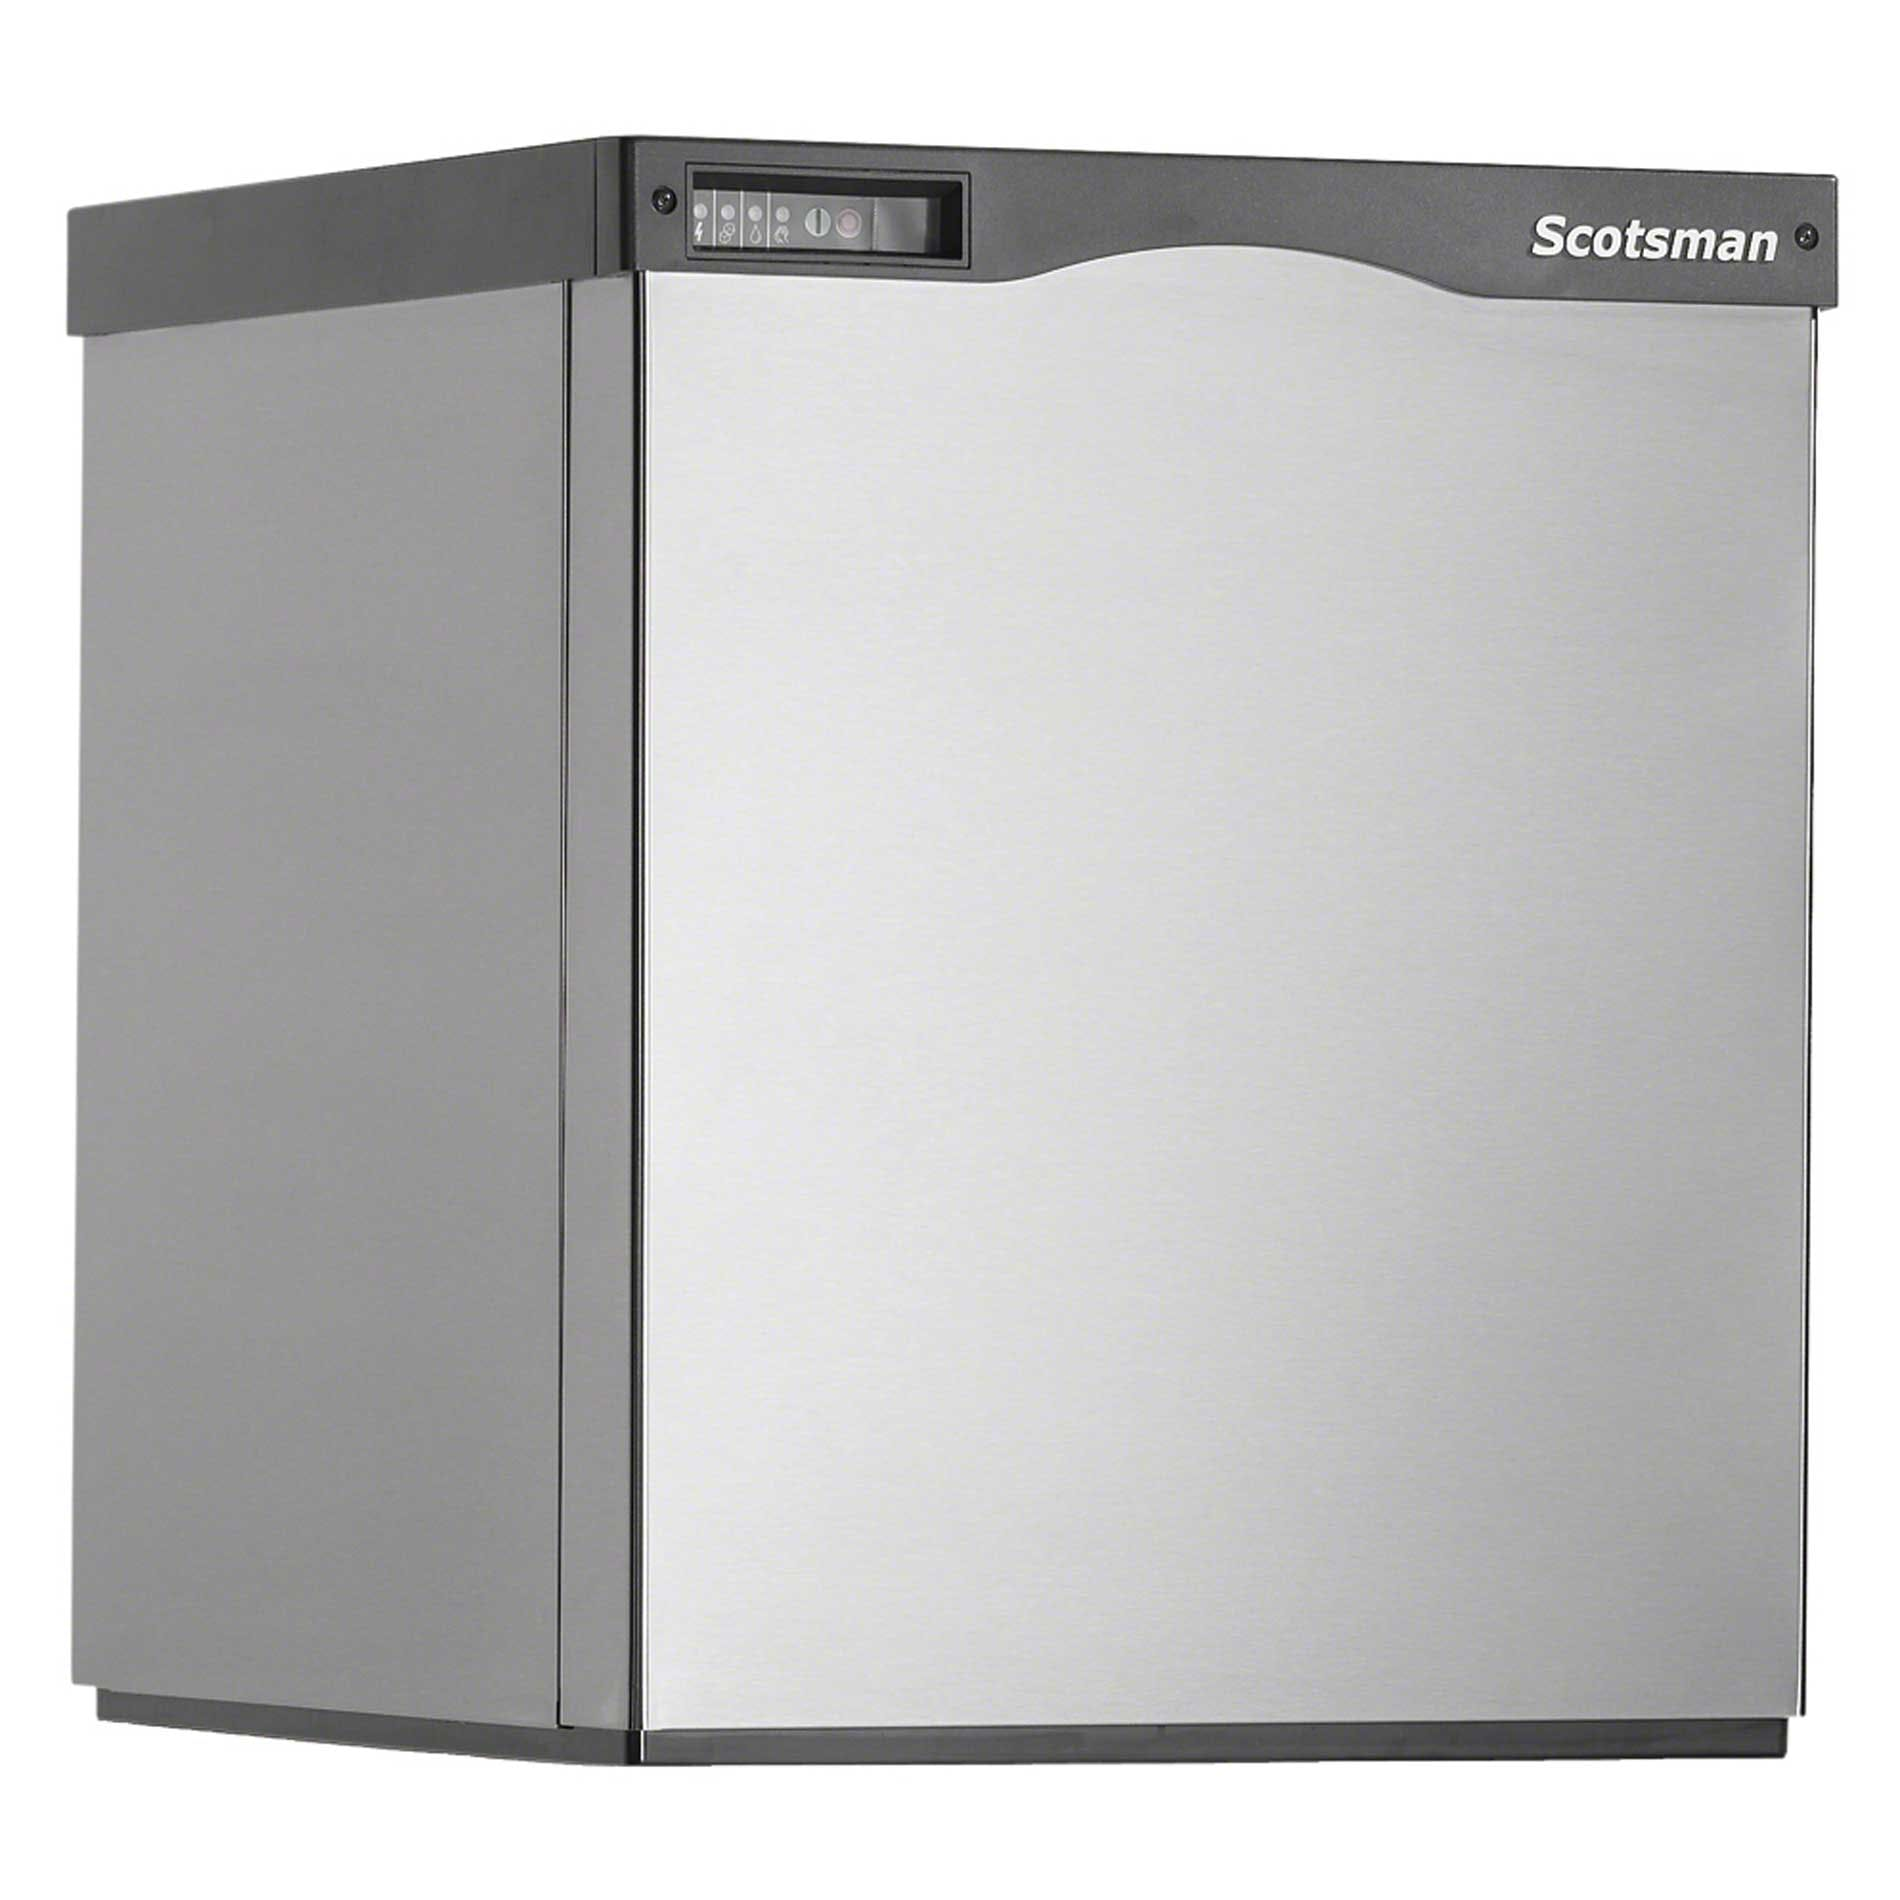 Scotsman - F1522L-1 1200 lb Modular Remote Low Side Flake Ice Machine - Prodigy® Series Ice machine sold by Food Service Warehouse